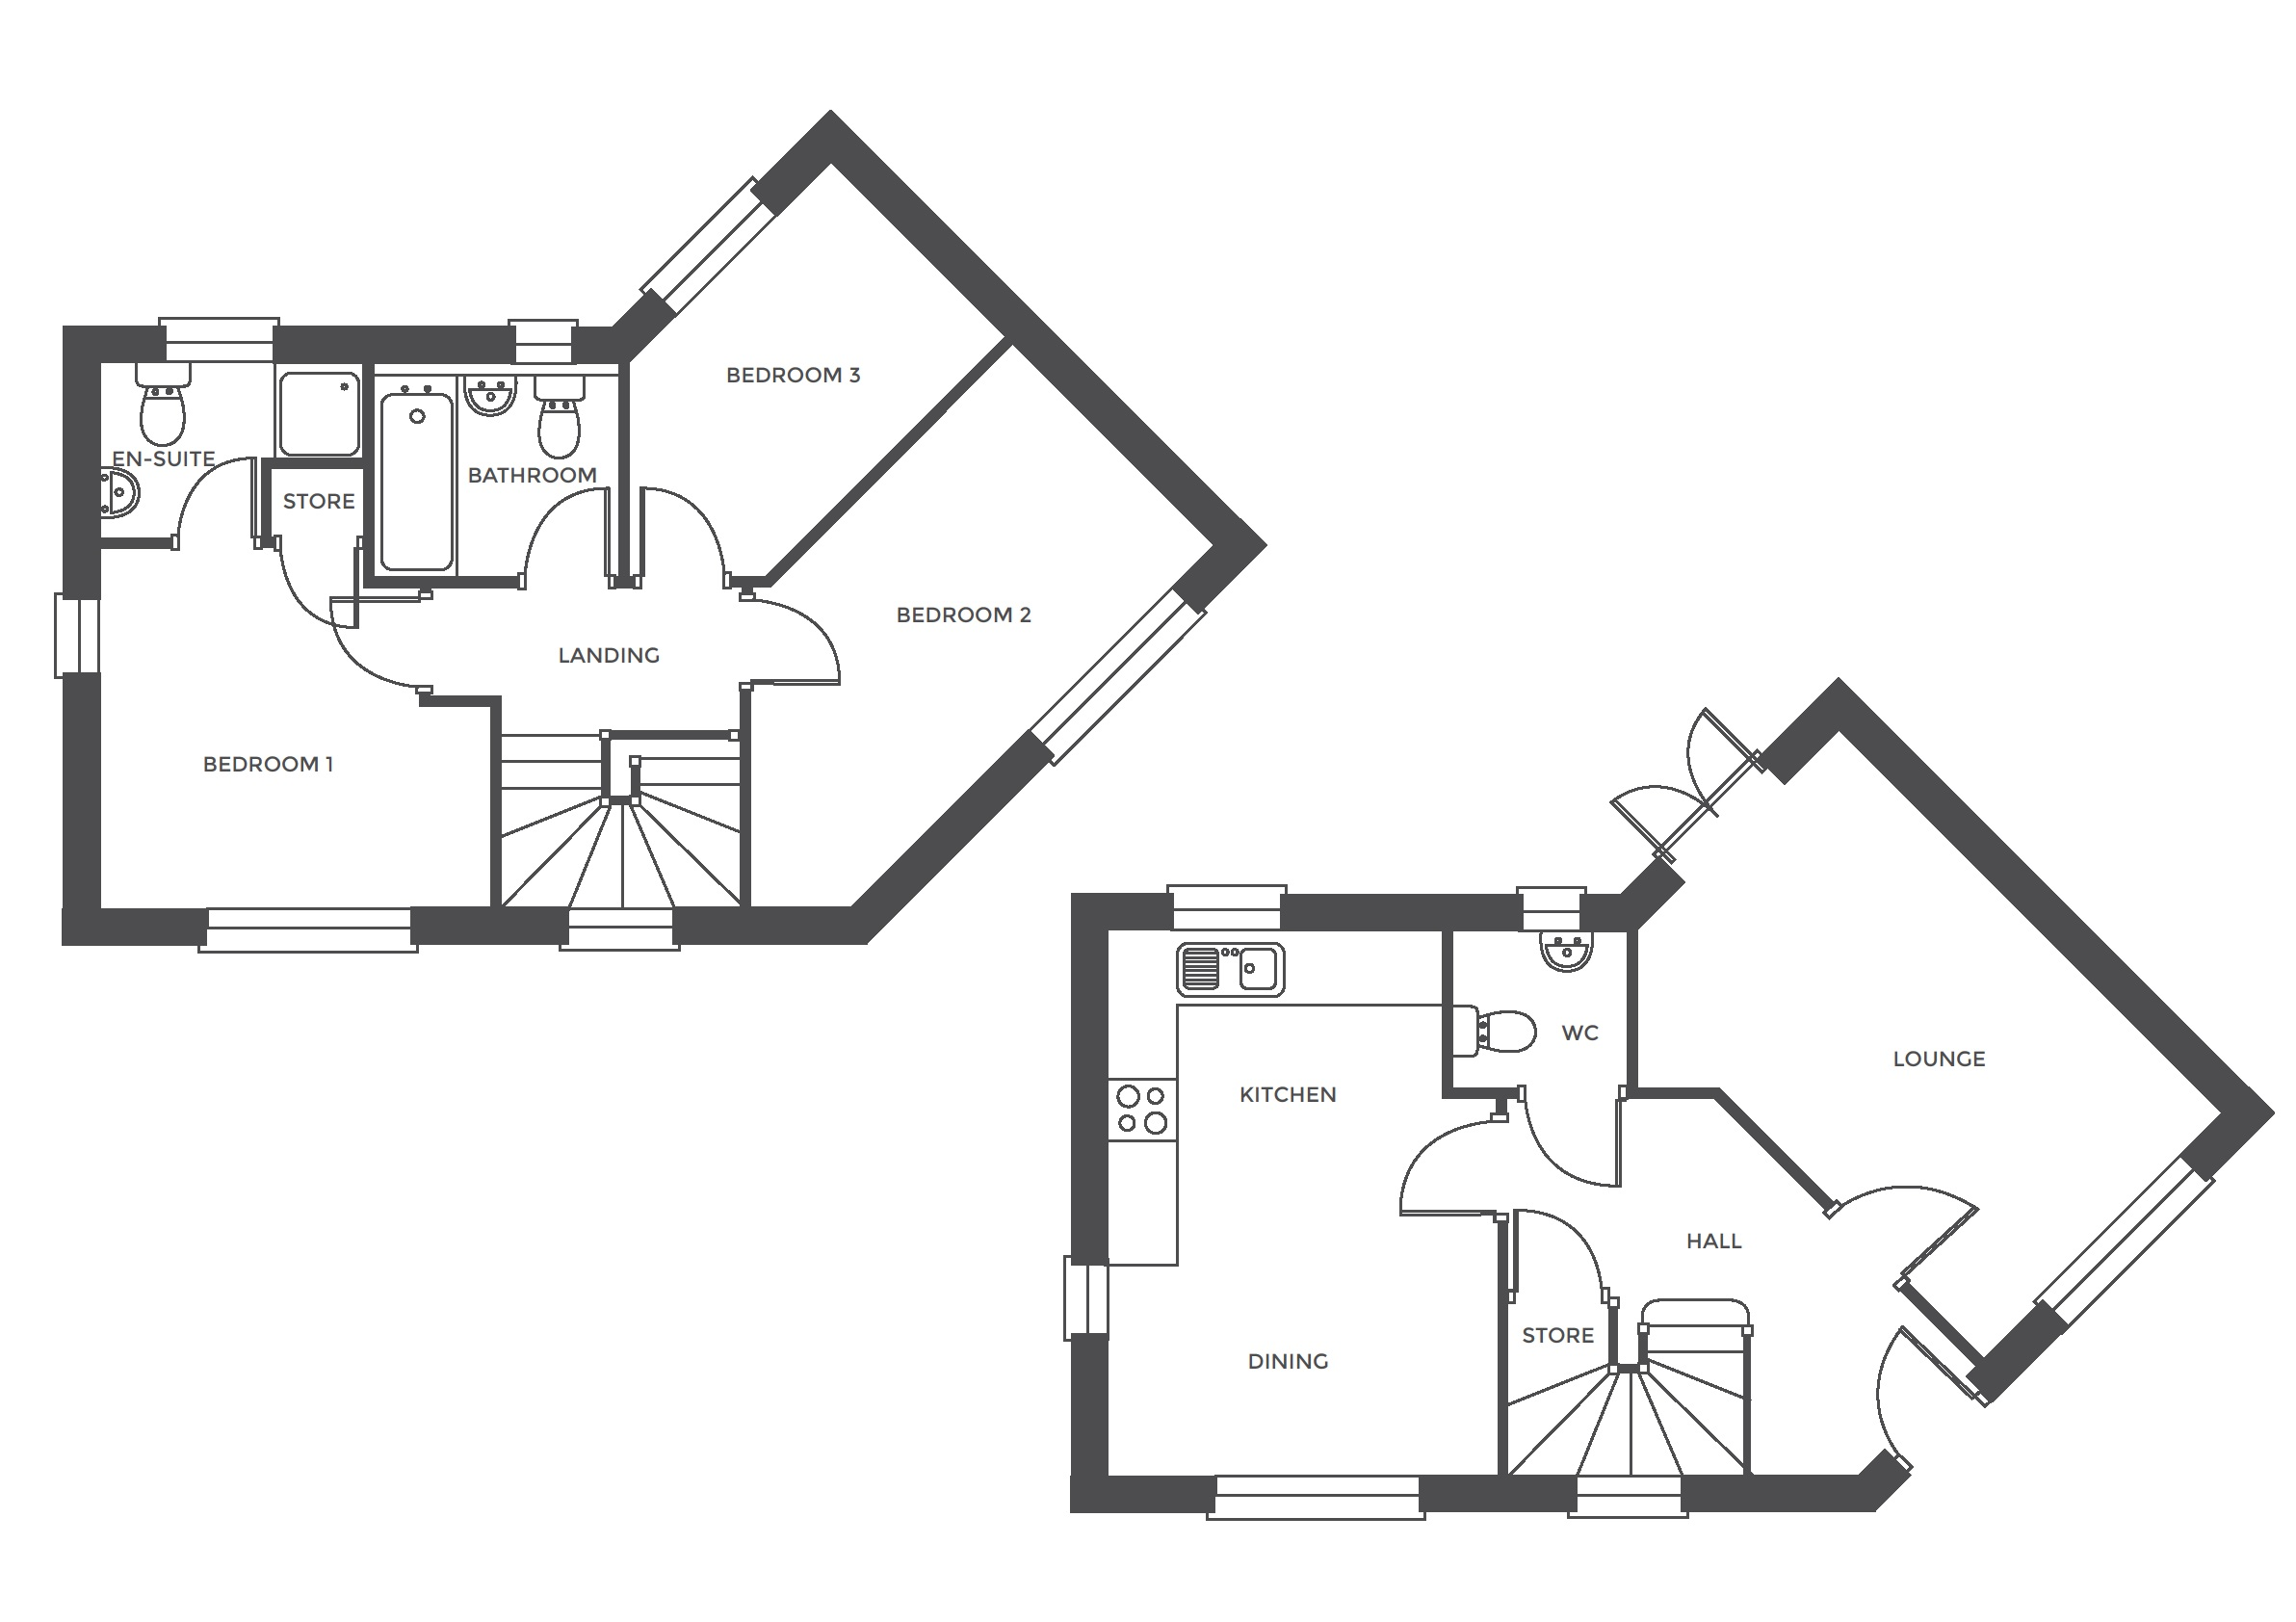 Repington Walk, Plot 4 floor plan